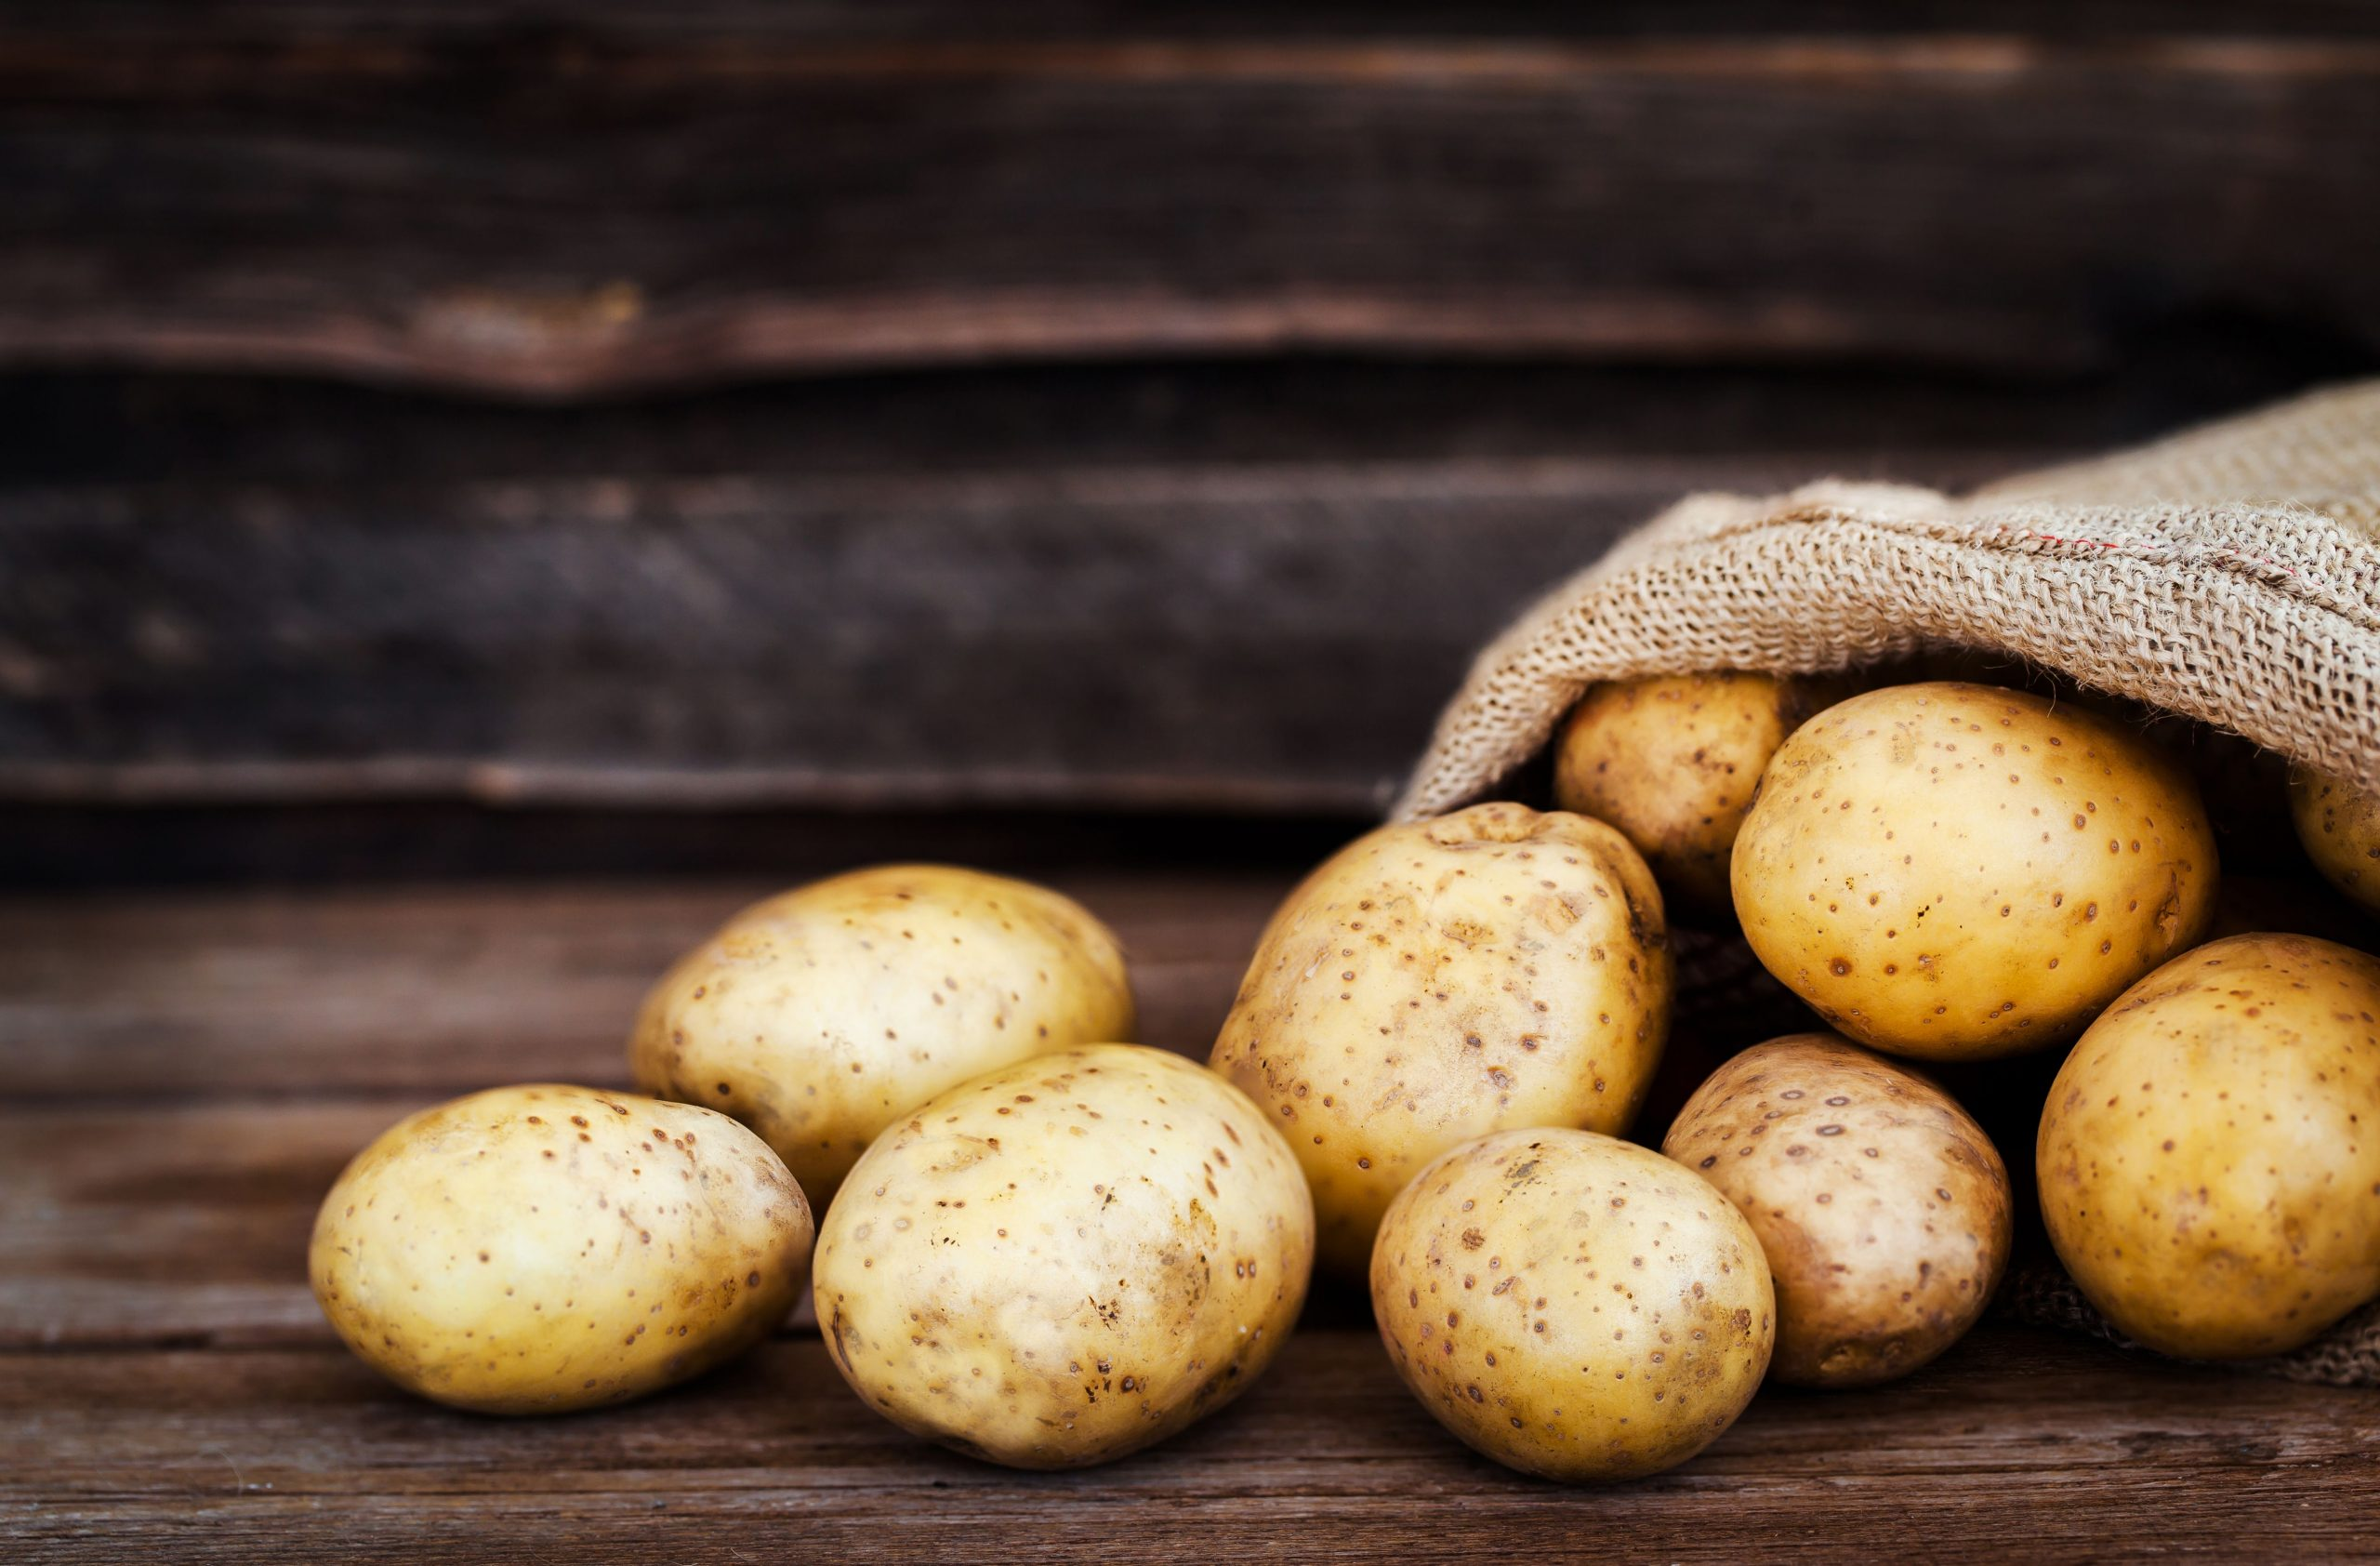 Potato diet: everything you need to know about the plan - Recipes Potato Diet